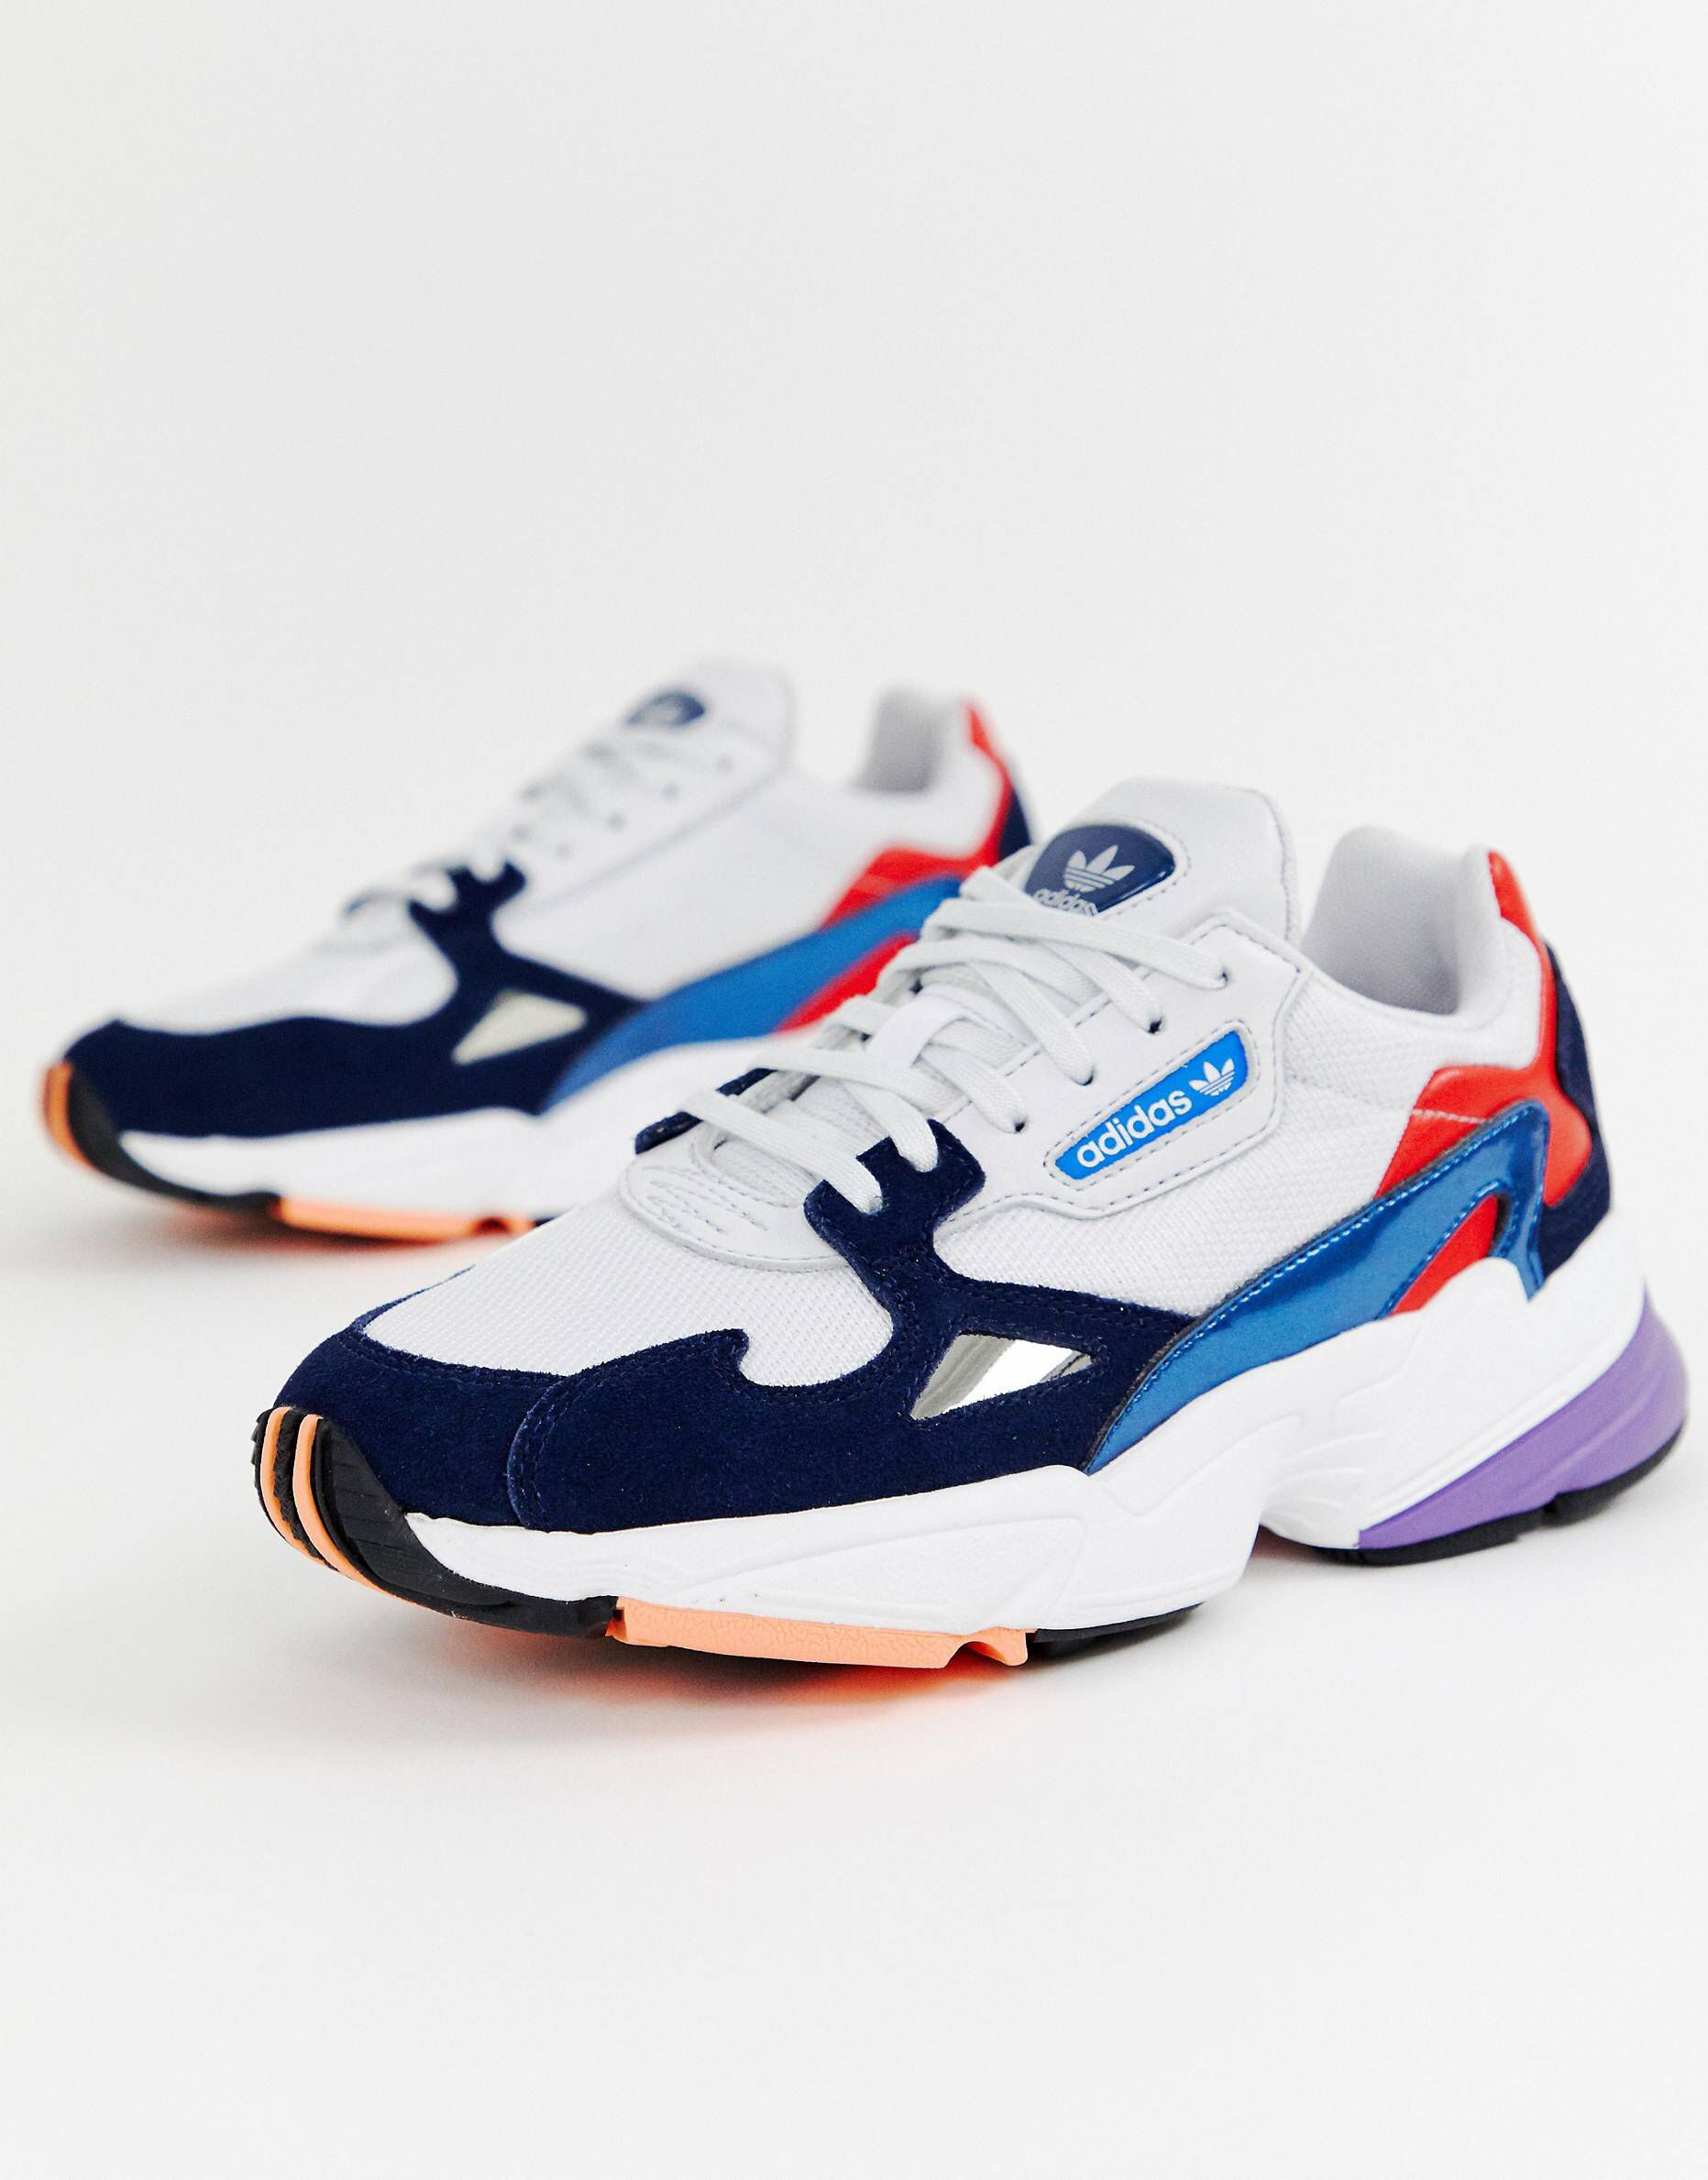 ef124b78c57 adidas Originals white and navy Falcon sneakers in 2019   Shoes ...